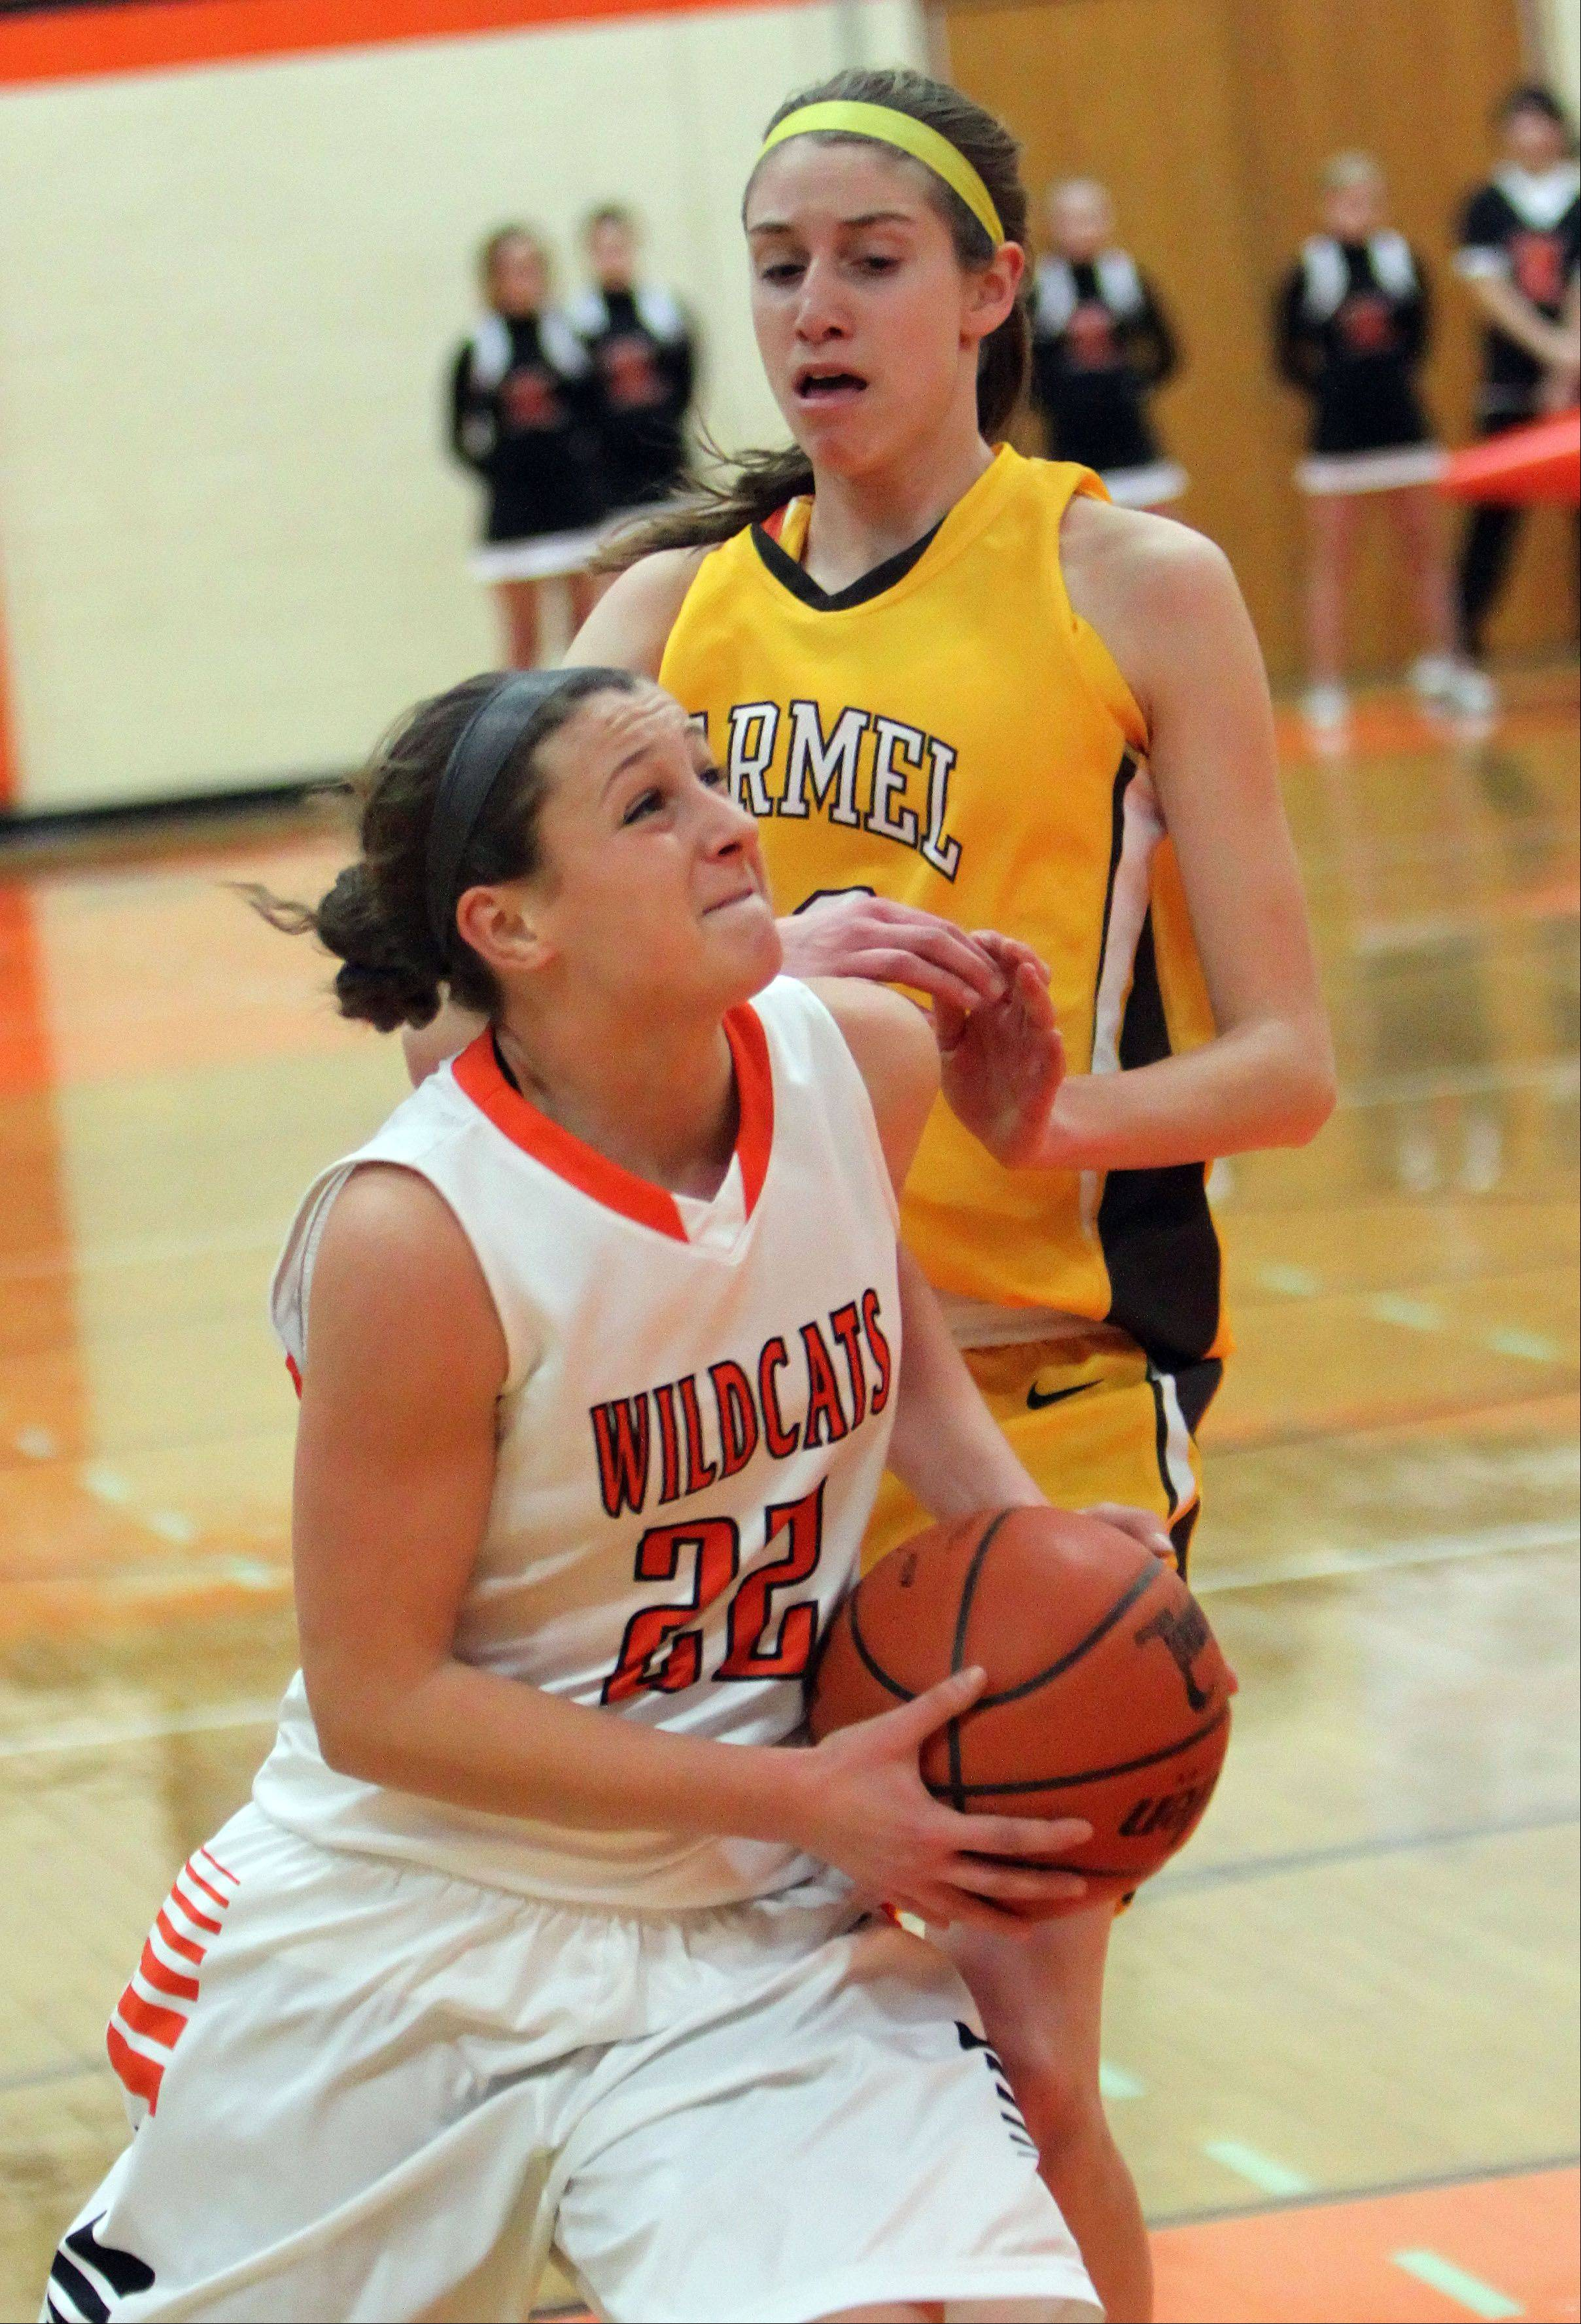 Libertyville's Olivia Mayer, left, drives on Carmel's Claire Ogrinc. Mayer has committed to a future in lacrosse and basketball at Augustana.